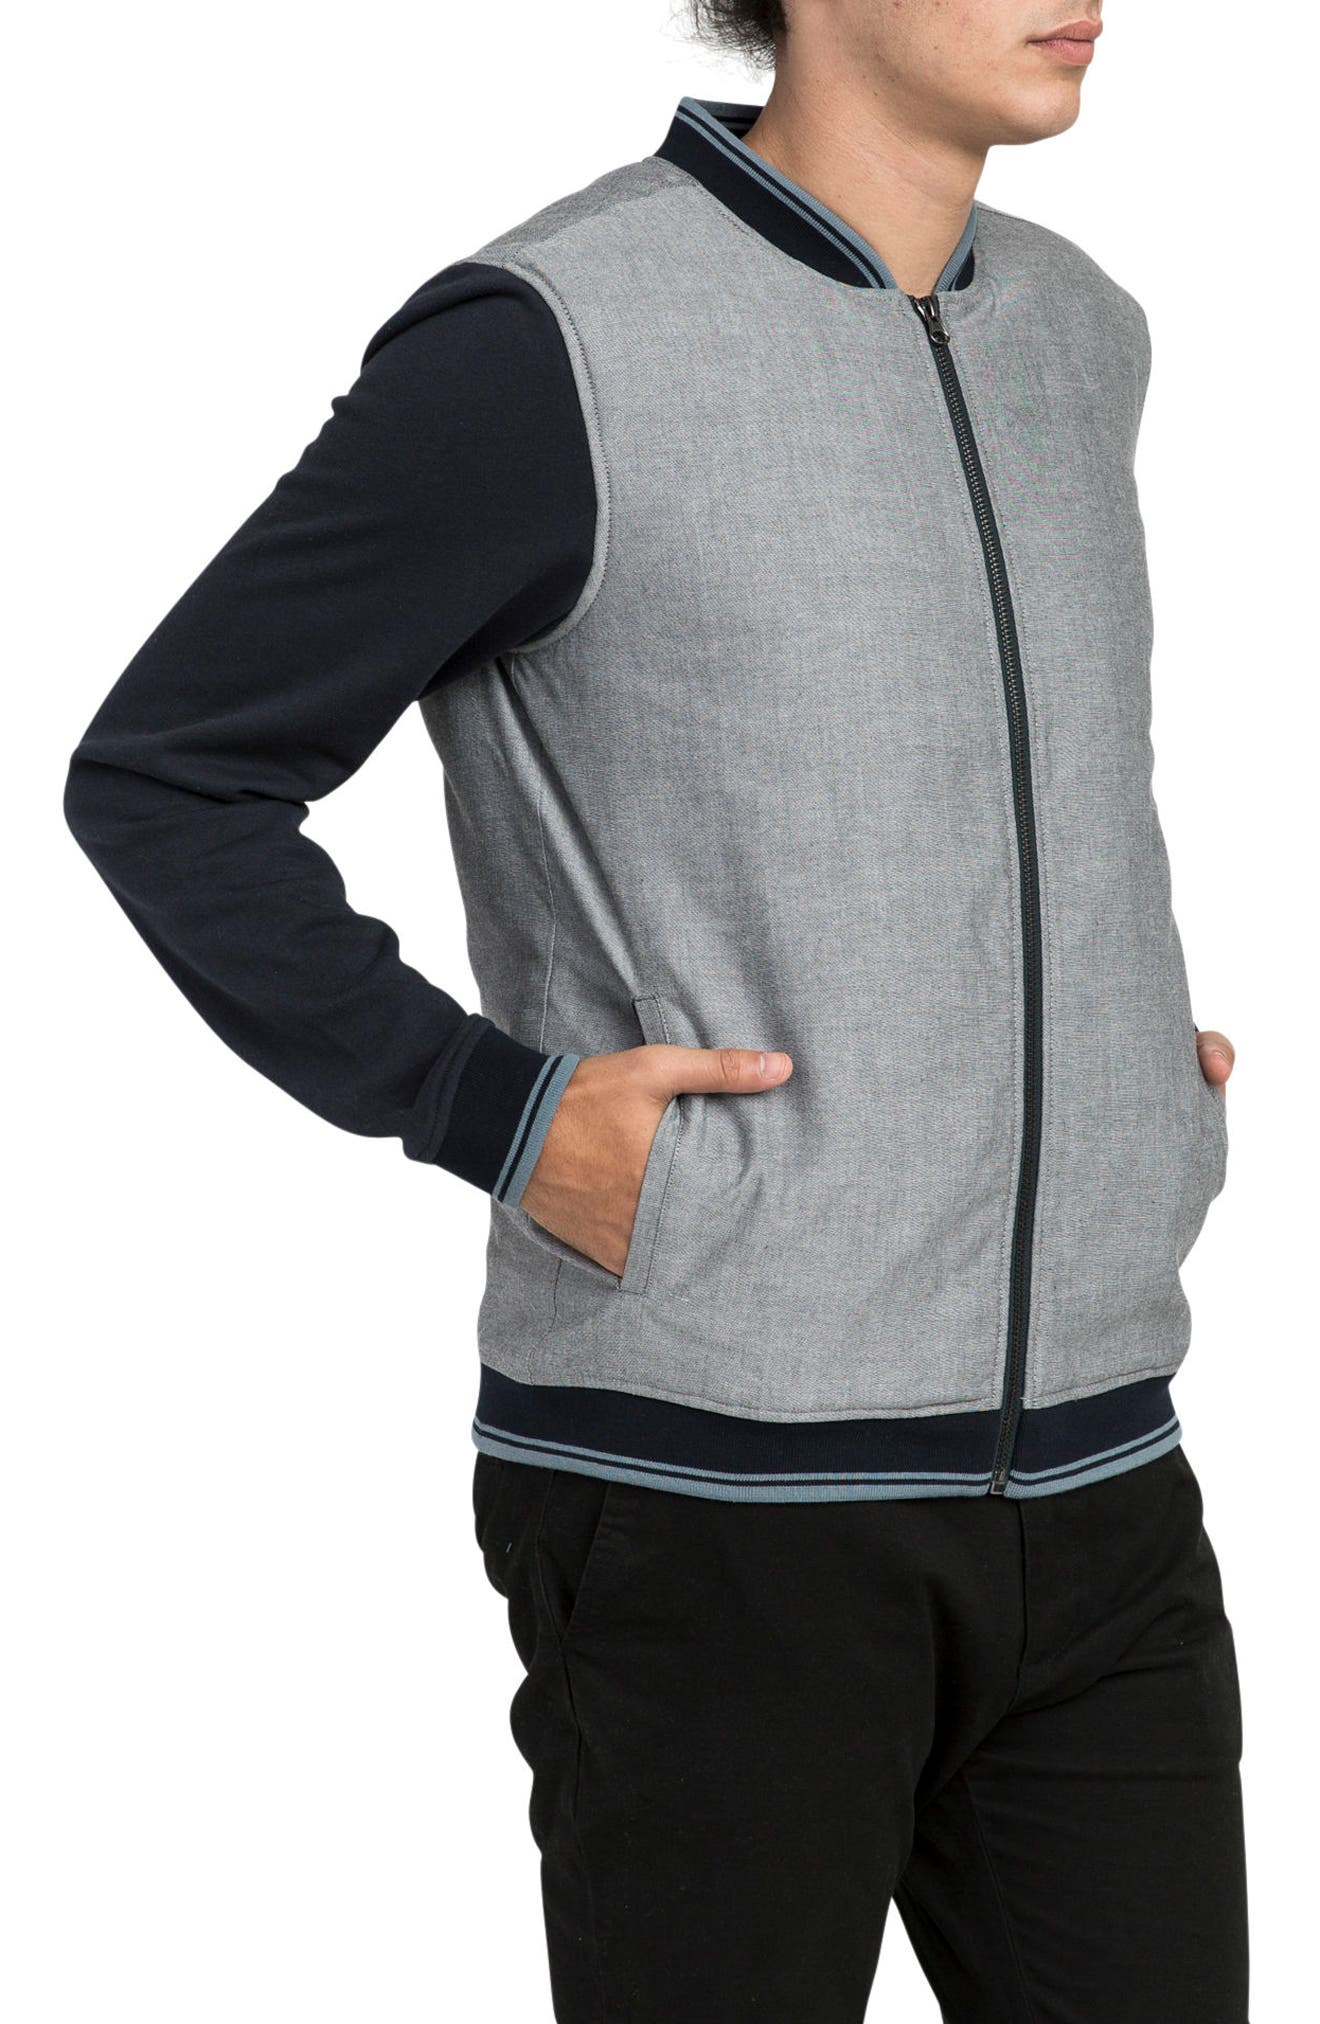 Oxford Bomber Jacket,                             Alternate thumbnail 3, color,                             Carbon